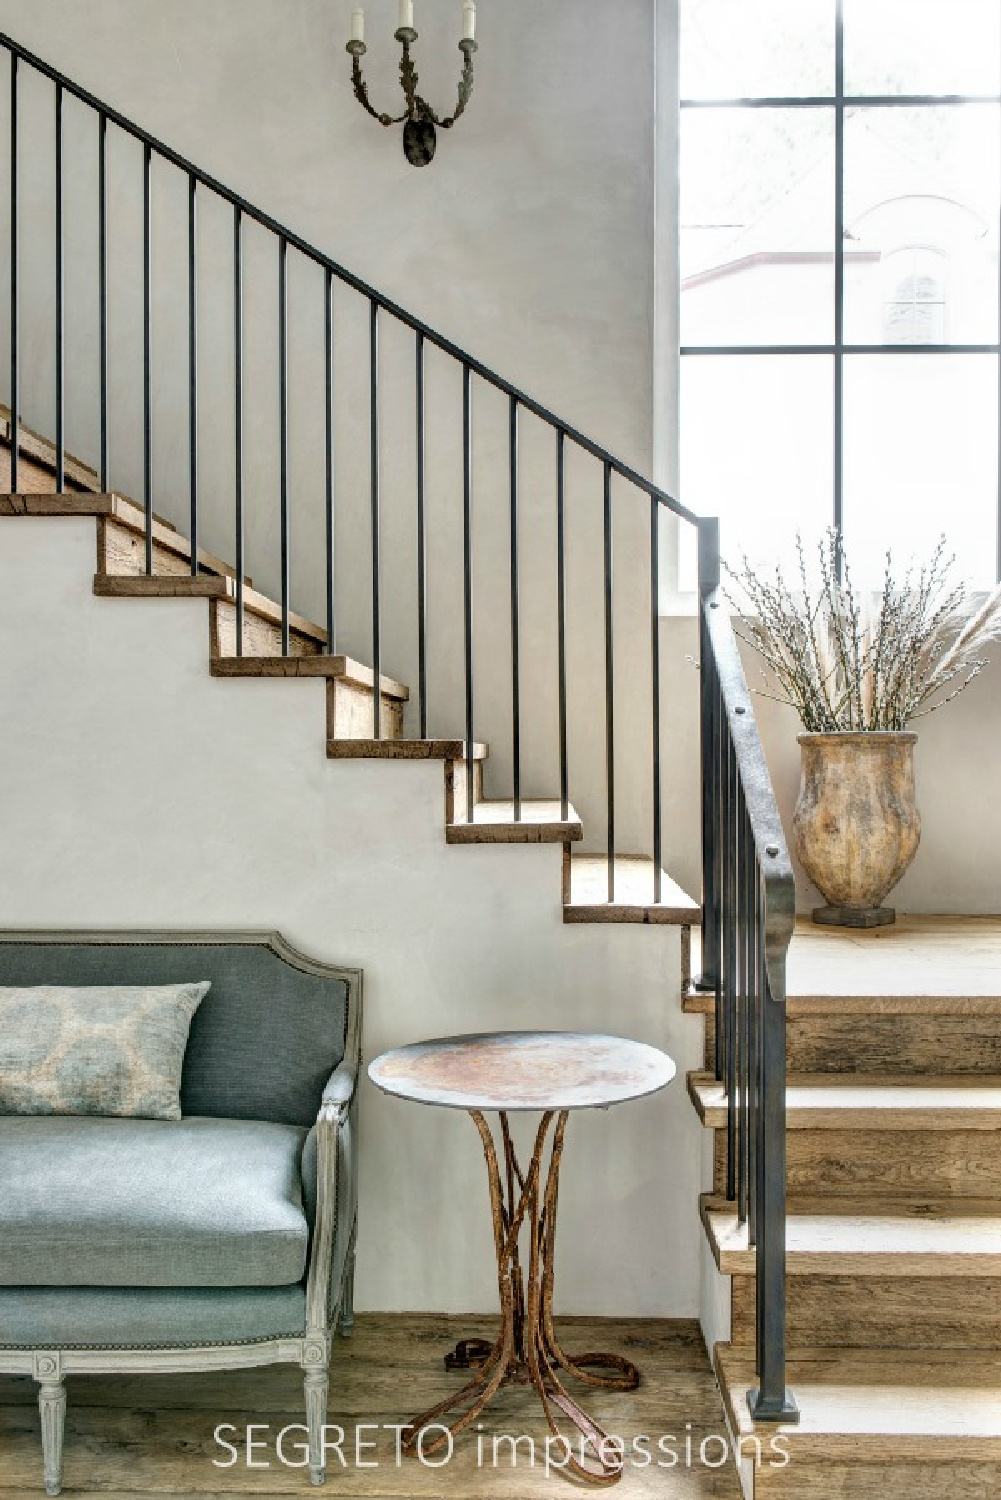 From SEGRETO impressions (2019) by Leslie Sinclair. Plastered walls and ceilings as well as reclaimed wood flooring sing in a newly constructed, timeless European country inspired home. #interiordesign #plasterwalls #oldworld #staircase